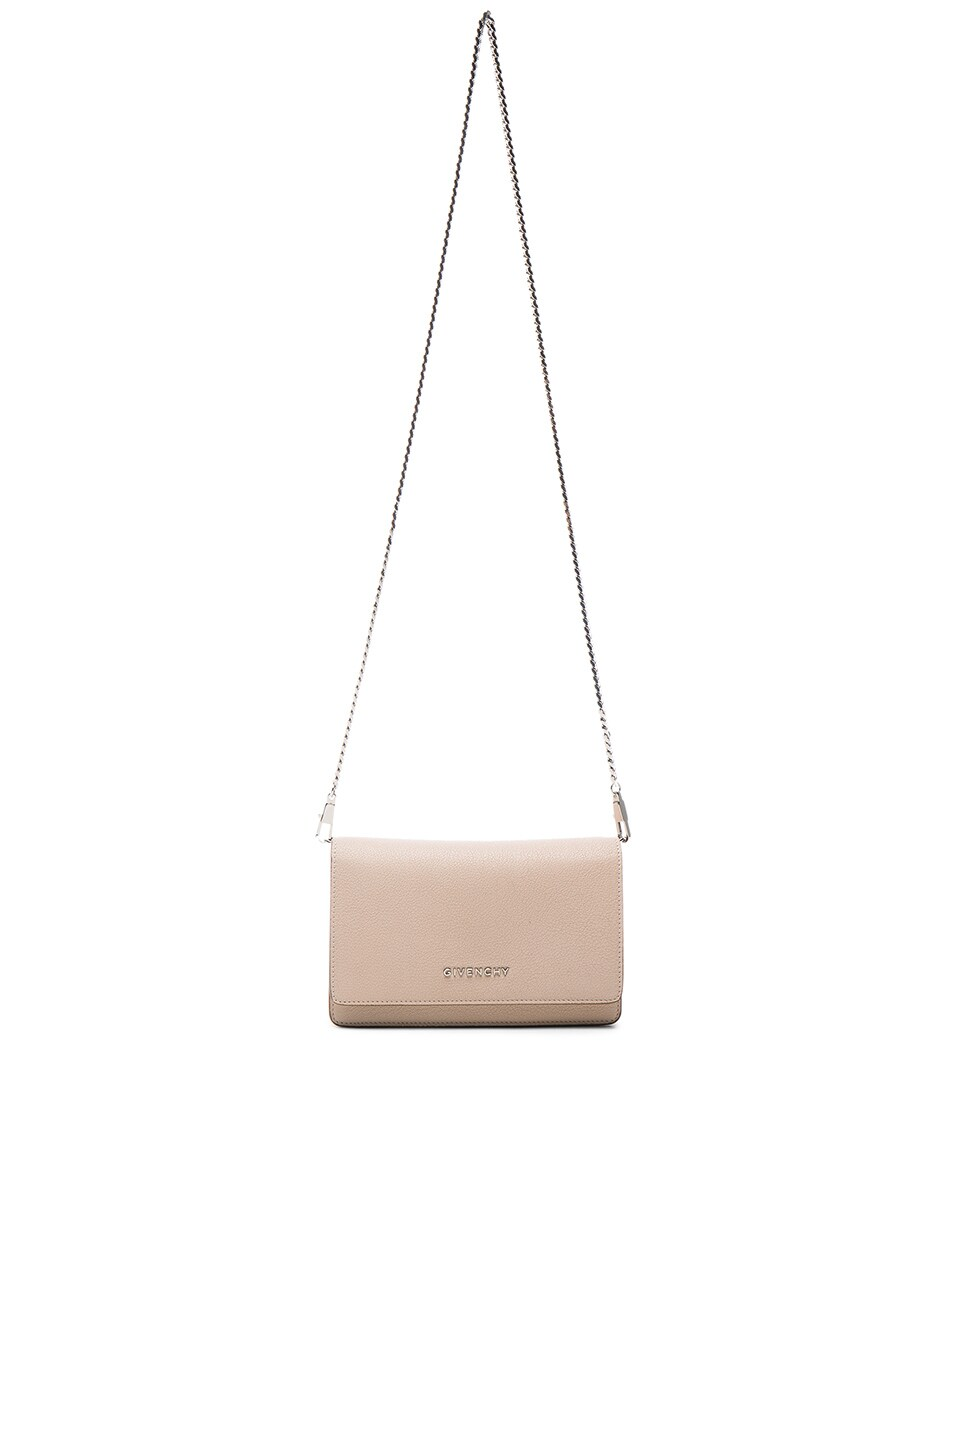 Image 6 of Givenchy Pandora Chain Wallet in Nude Pink